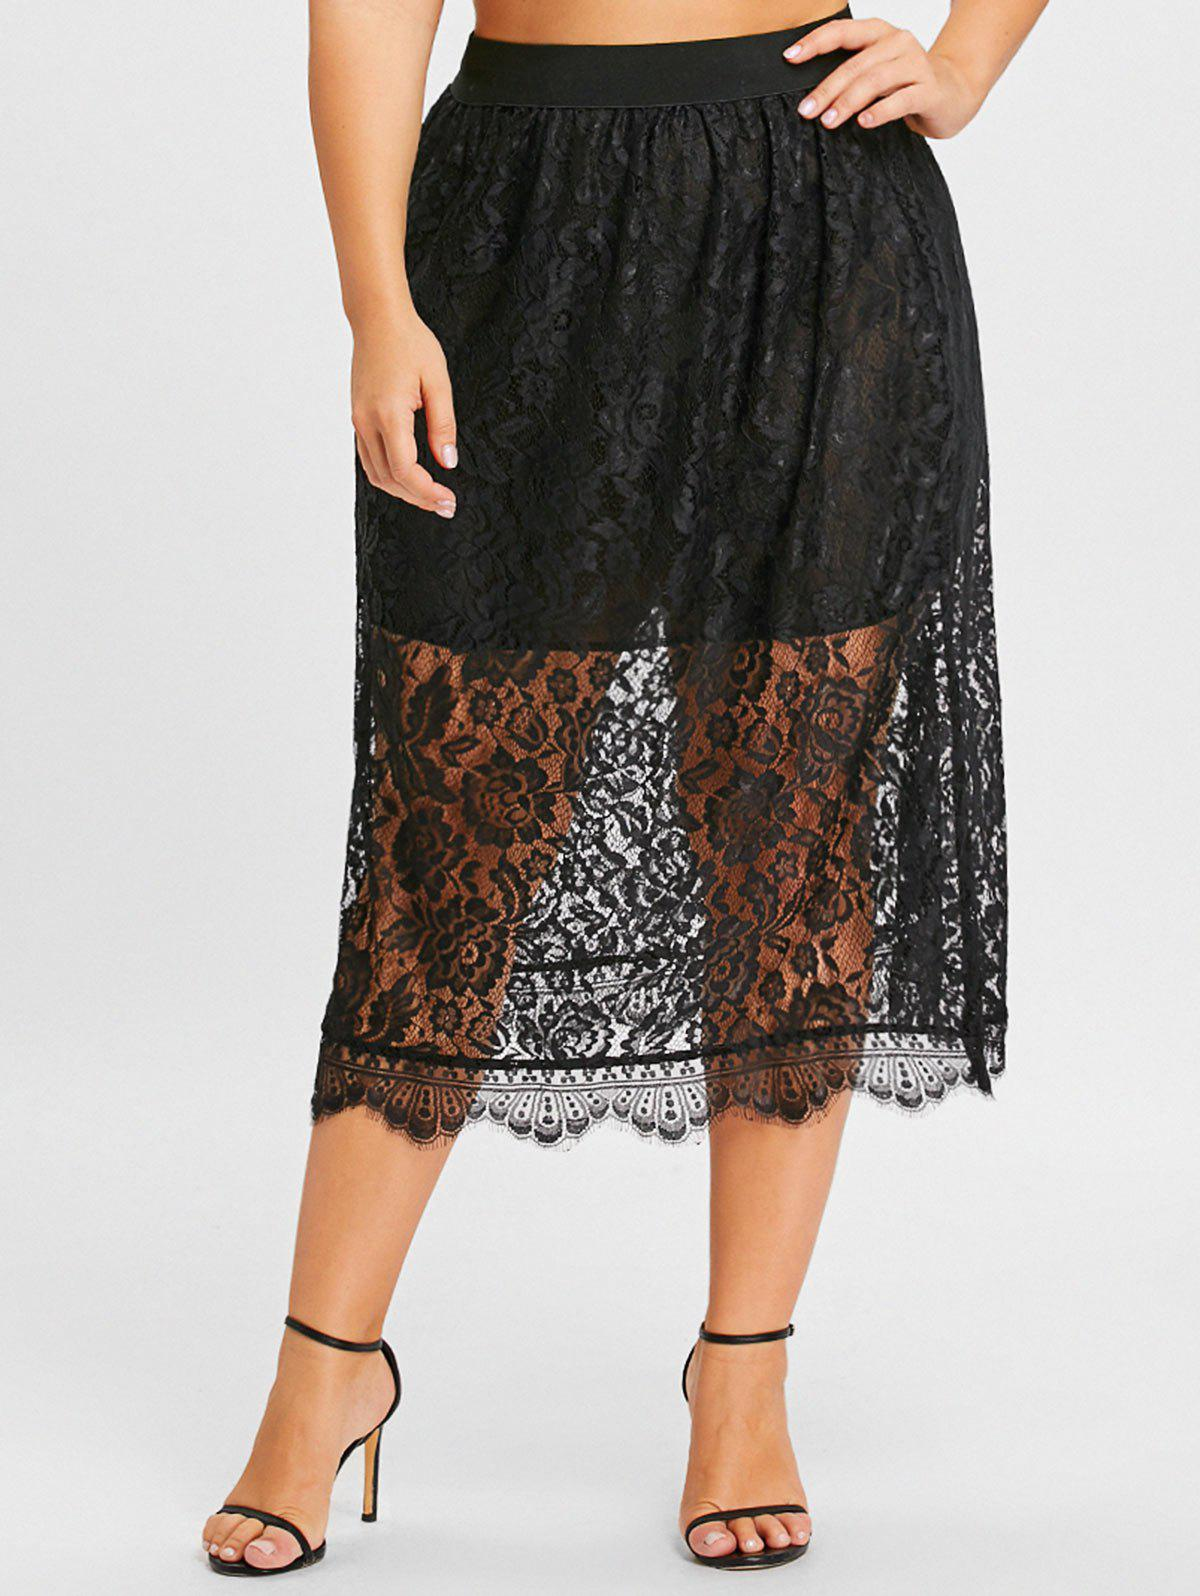 Lace Plus Size Midi Skirt - BLACK 5XL